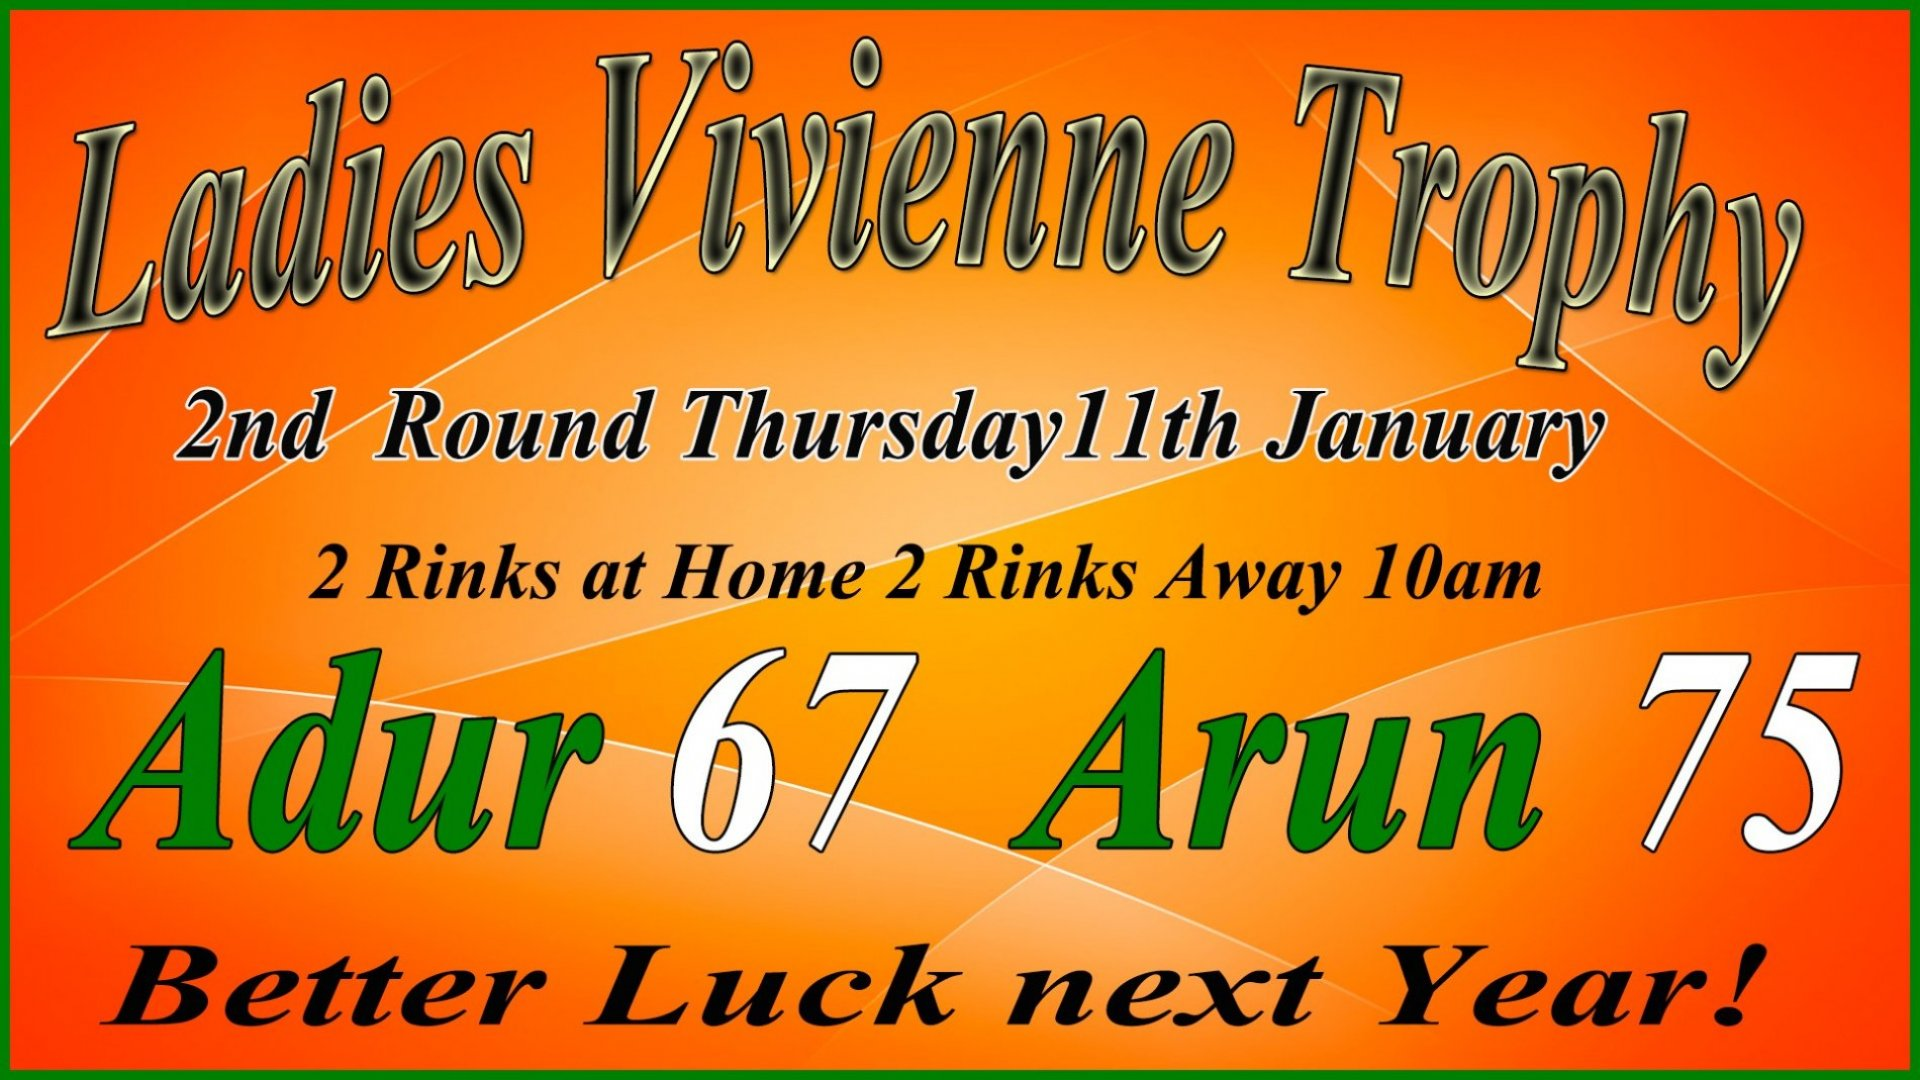 Ladies Vivienne Trophy - 2nd Round Result - Adur v Arun - 11.1.17